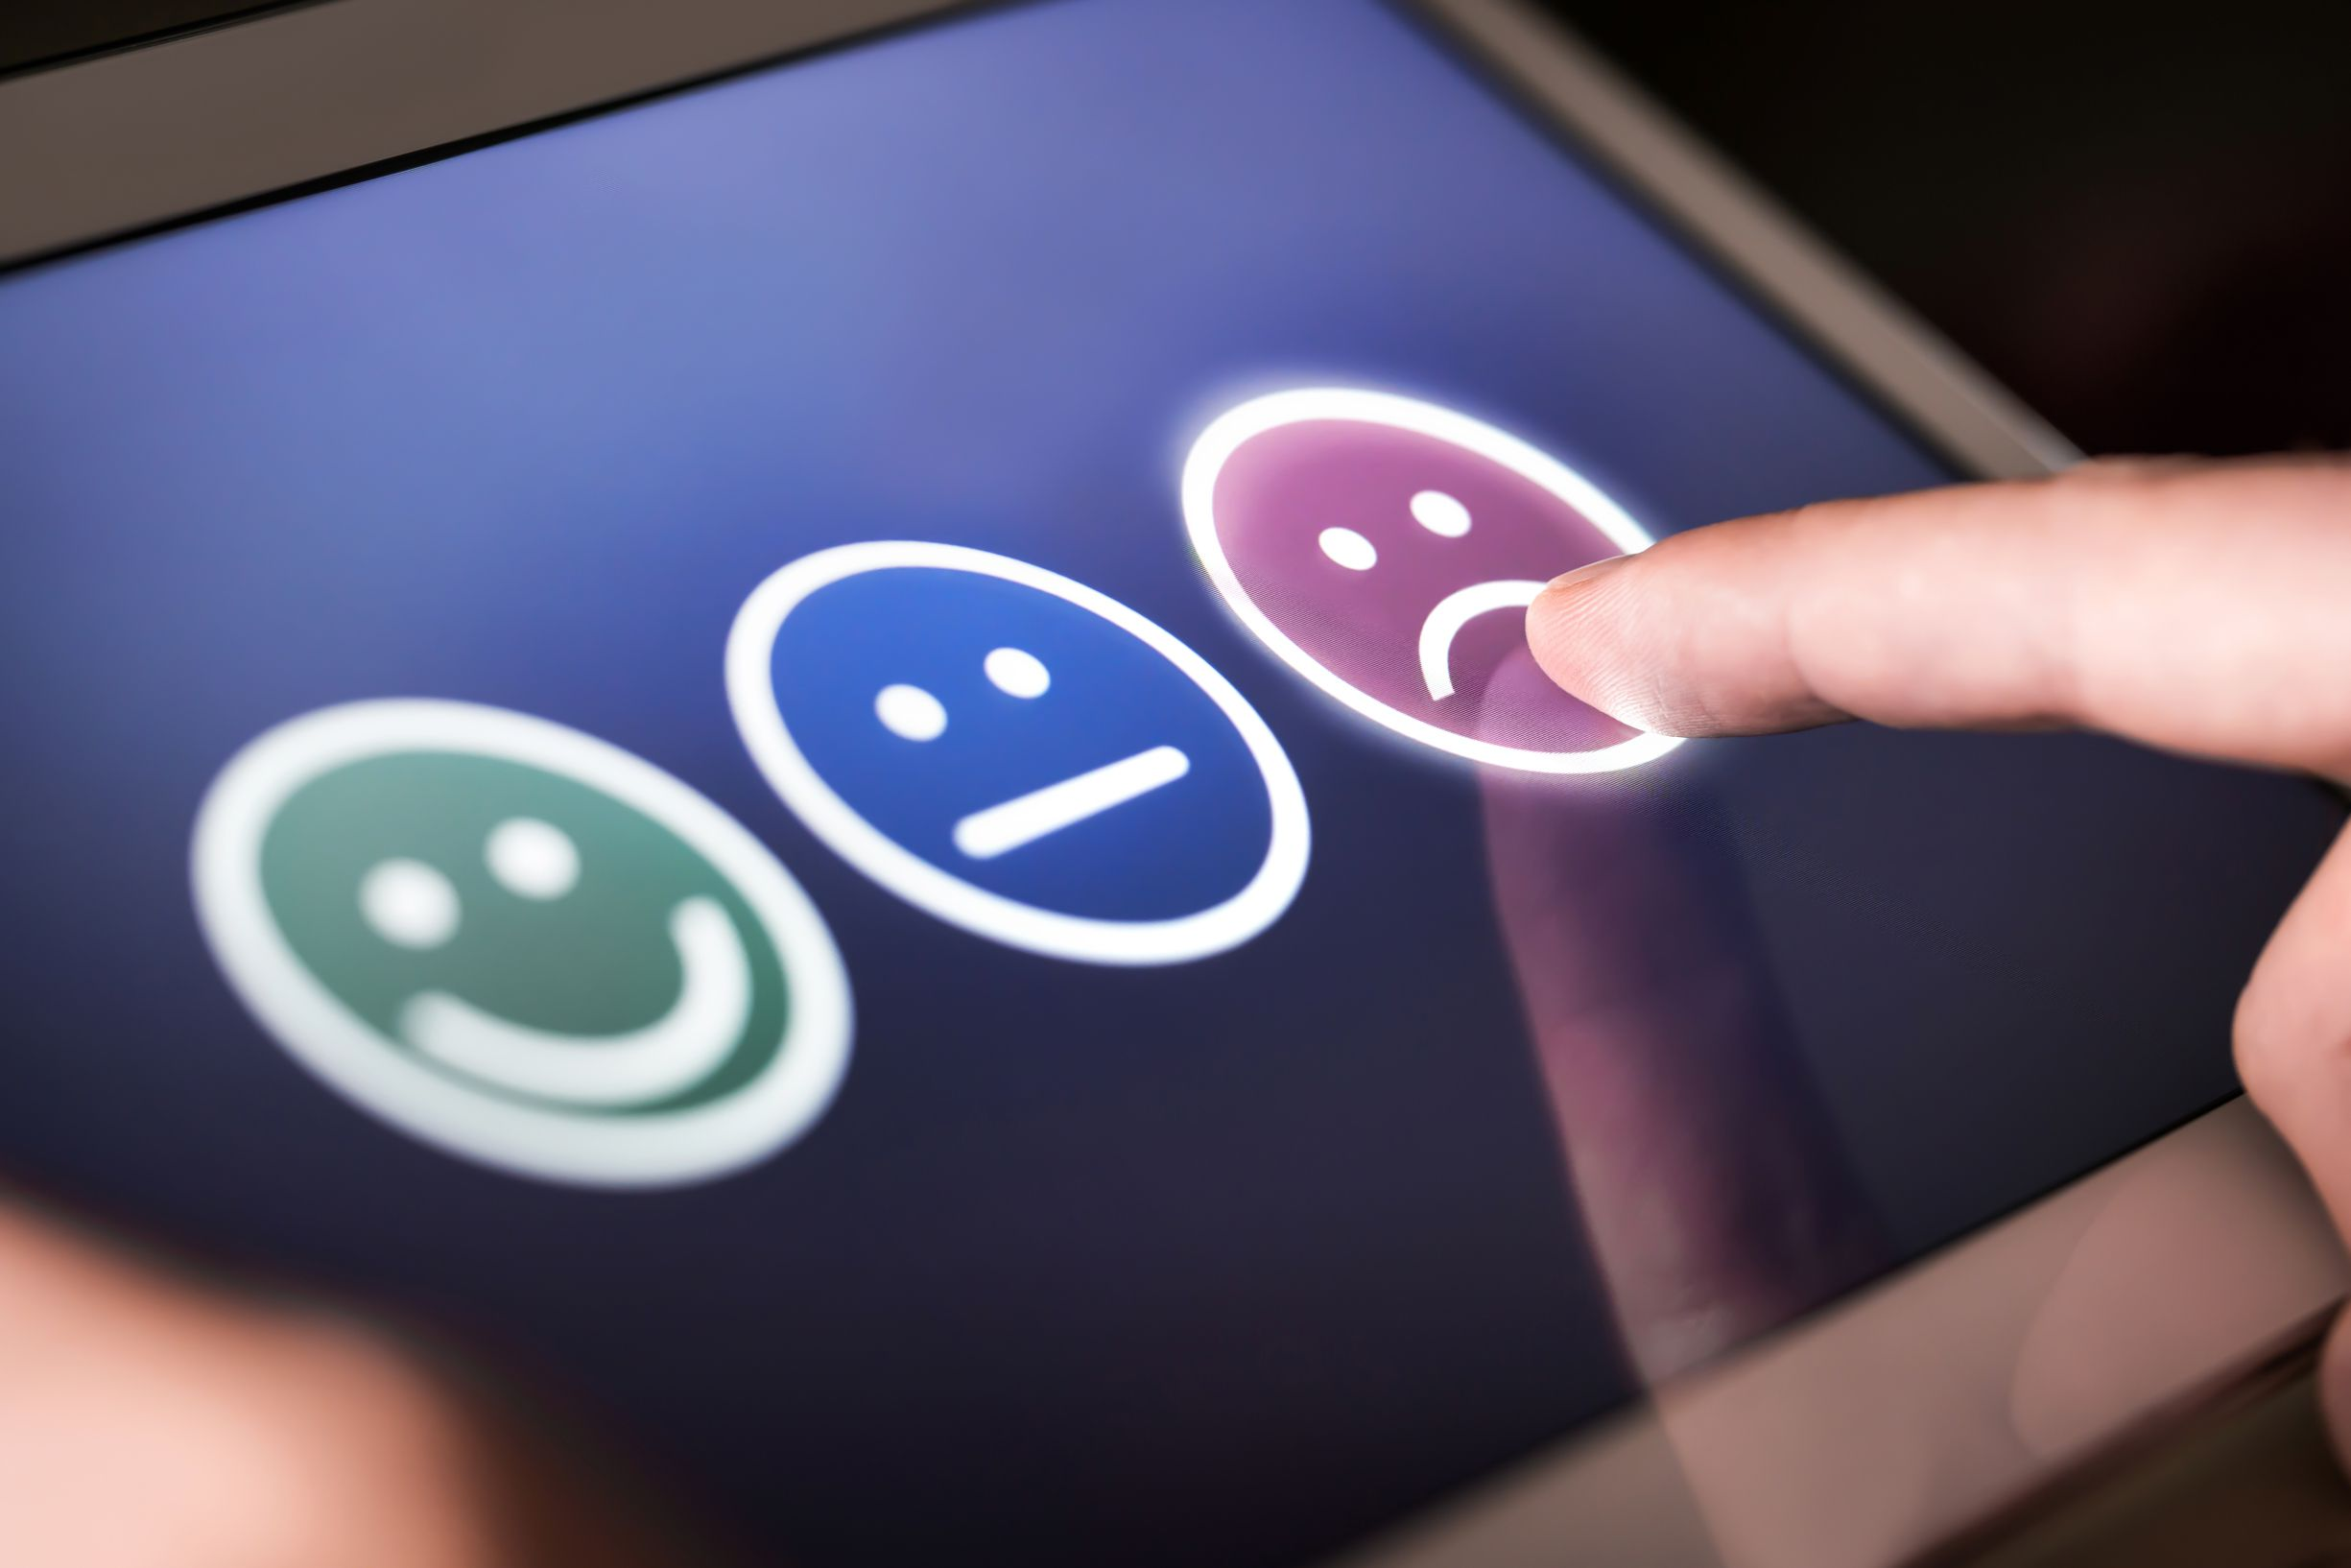 Unhappy and disappointed customer giving low rating and negative feedback in survey, poll or questionnaire